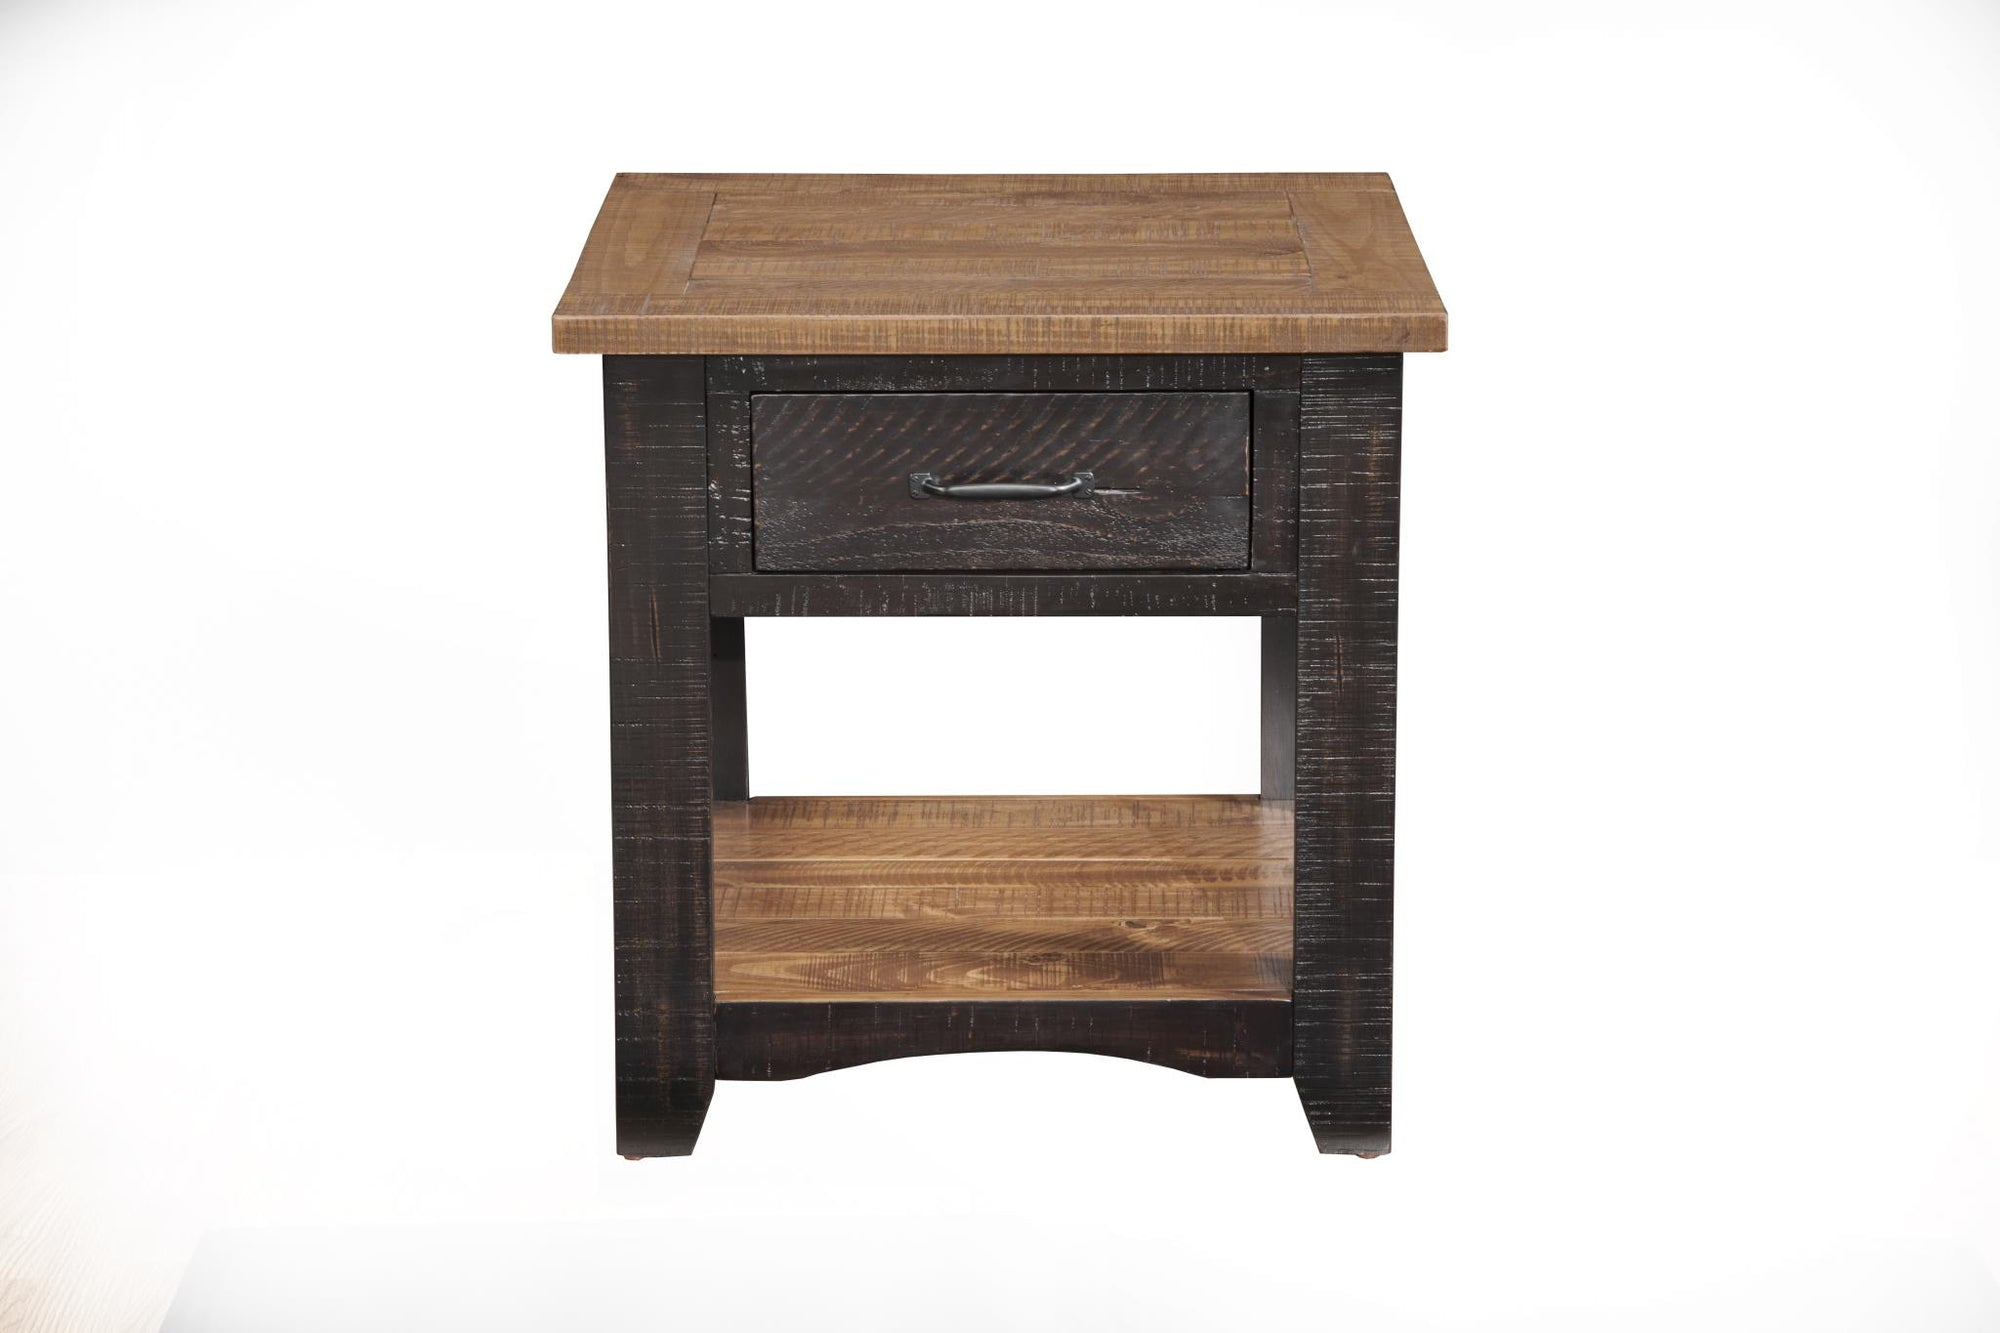 Rustic occasional Nightstand/End table - Black & Honey tabacco - KTL Furniture